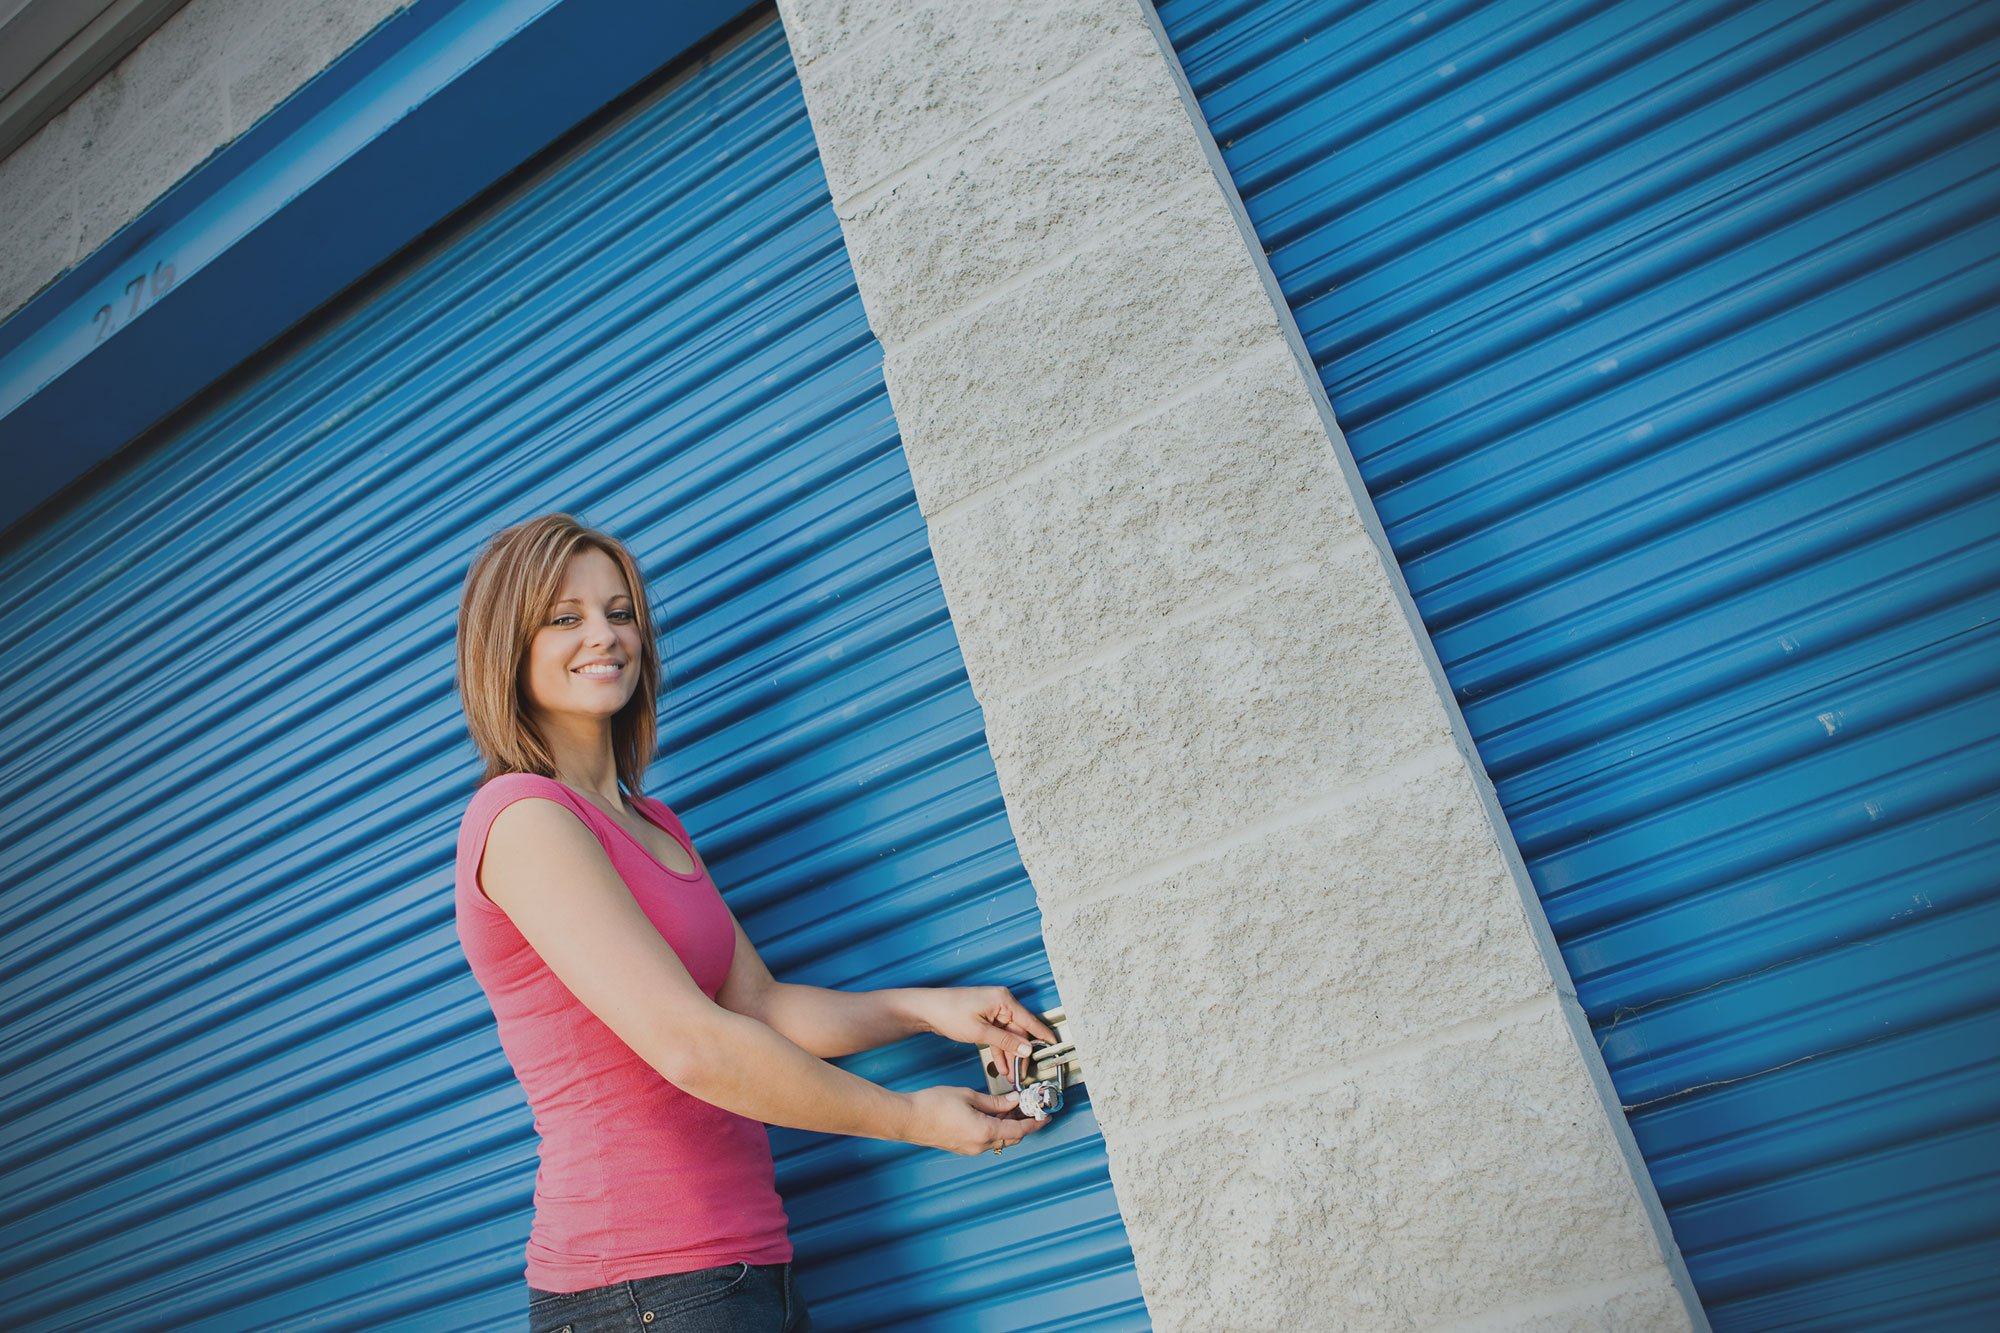 Making Self-Storage space work for you